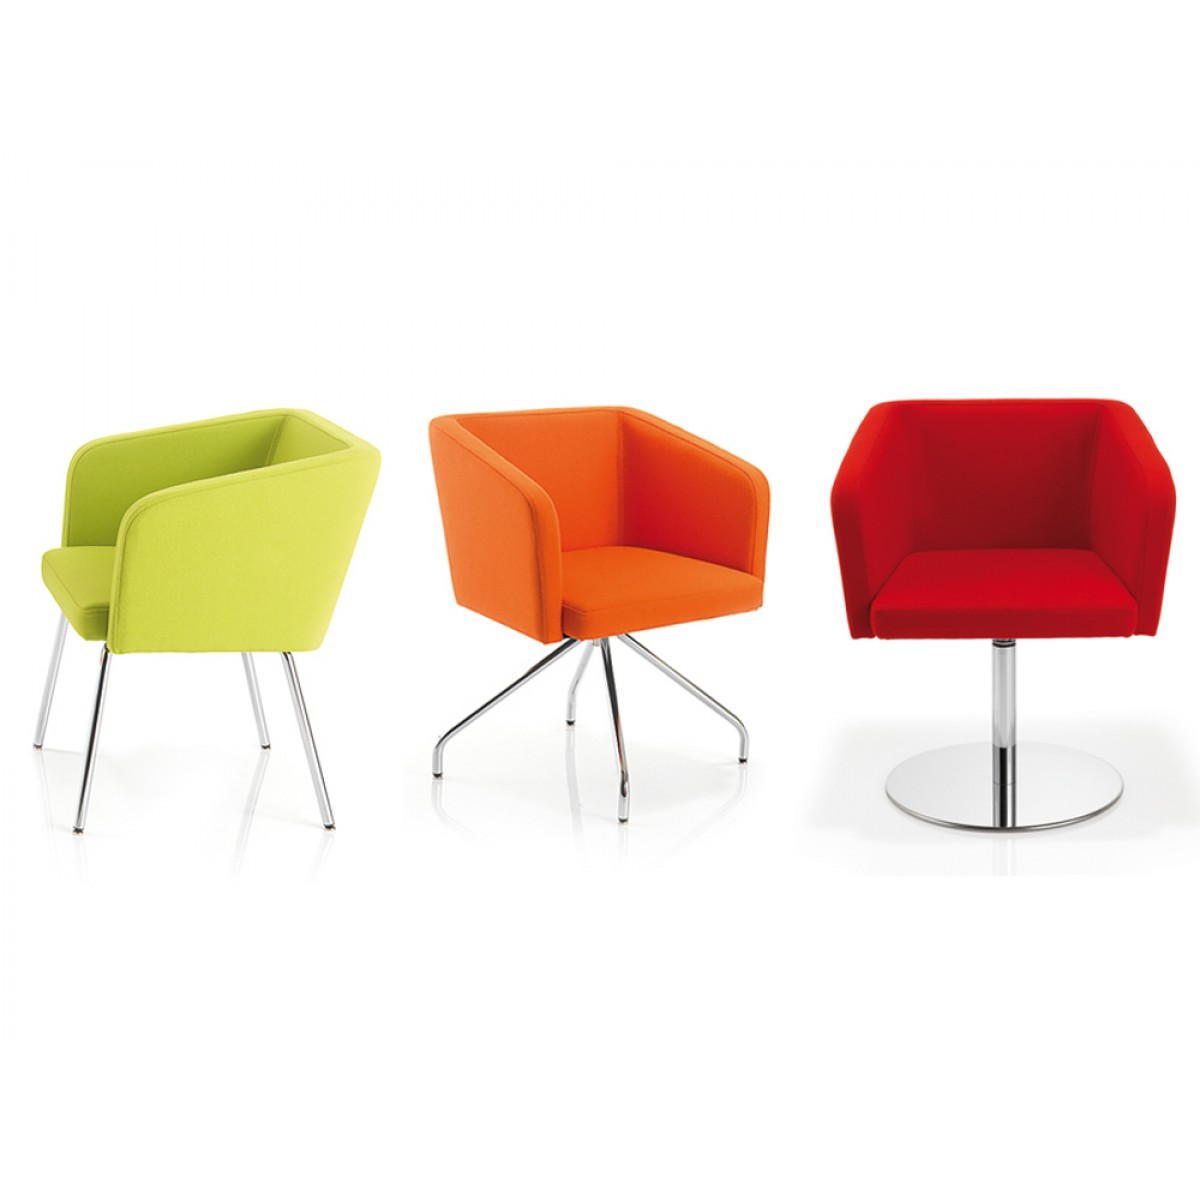 Zest Chair - Zest Tub Chairs [Zest 01] | Office Furniture London